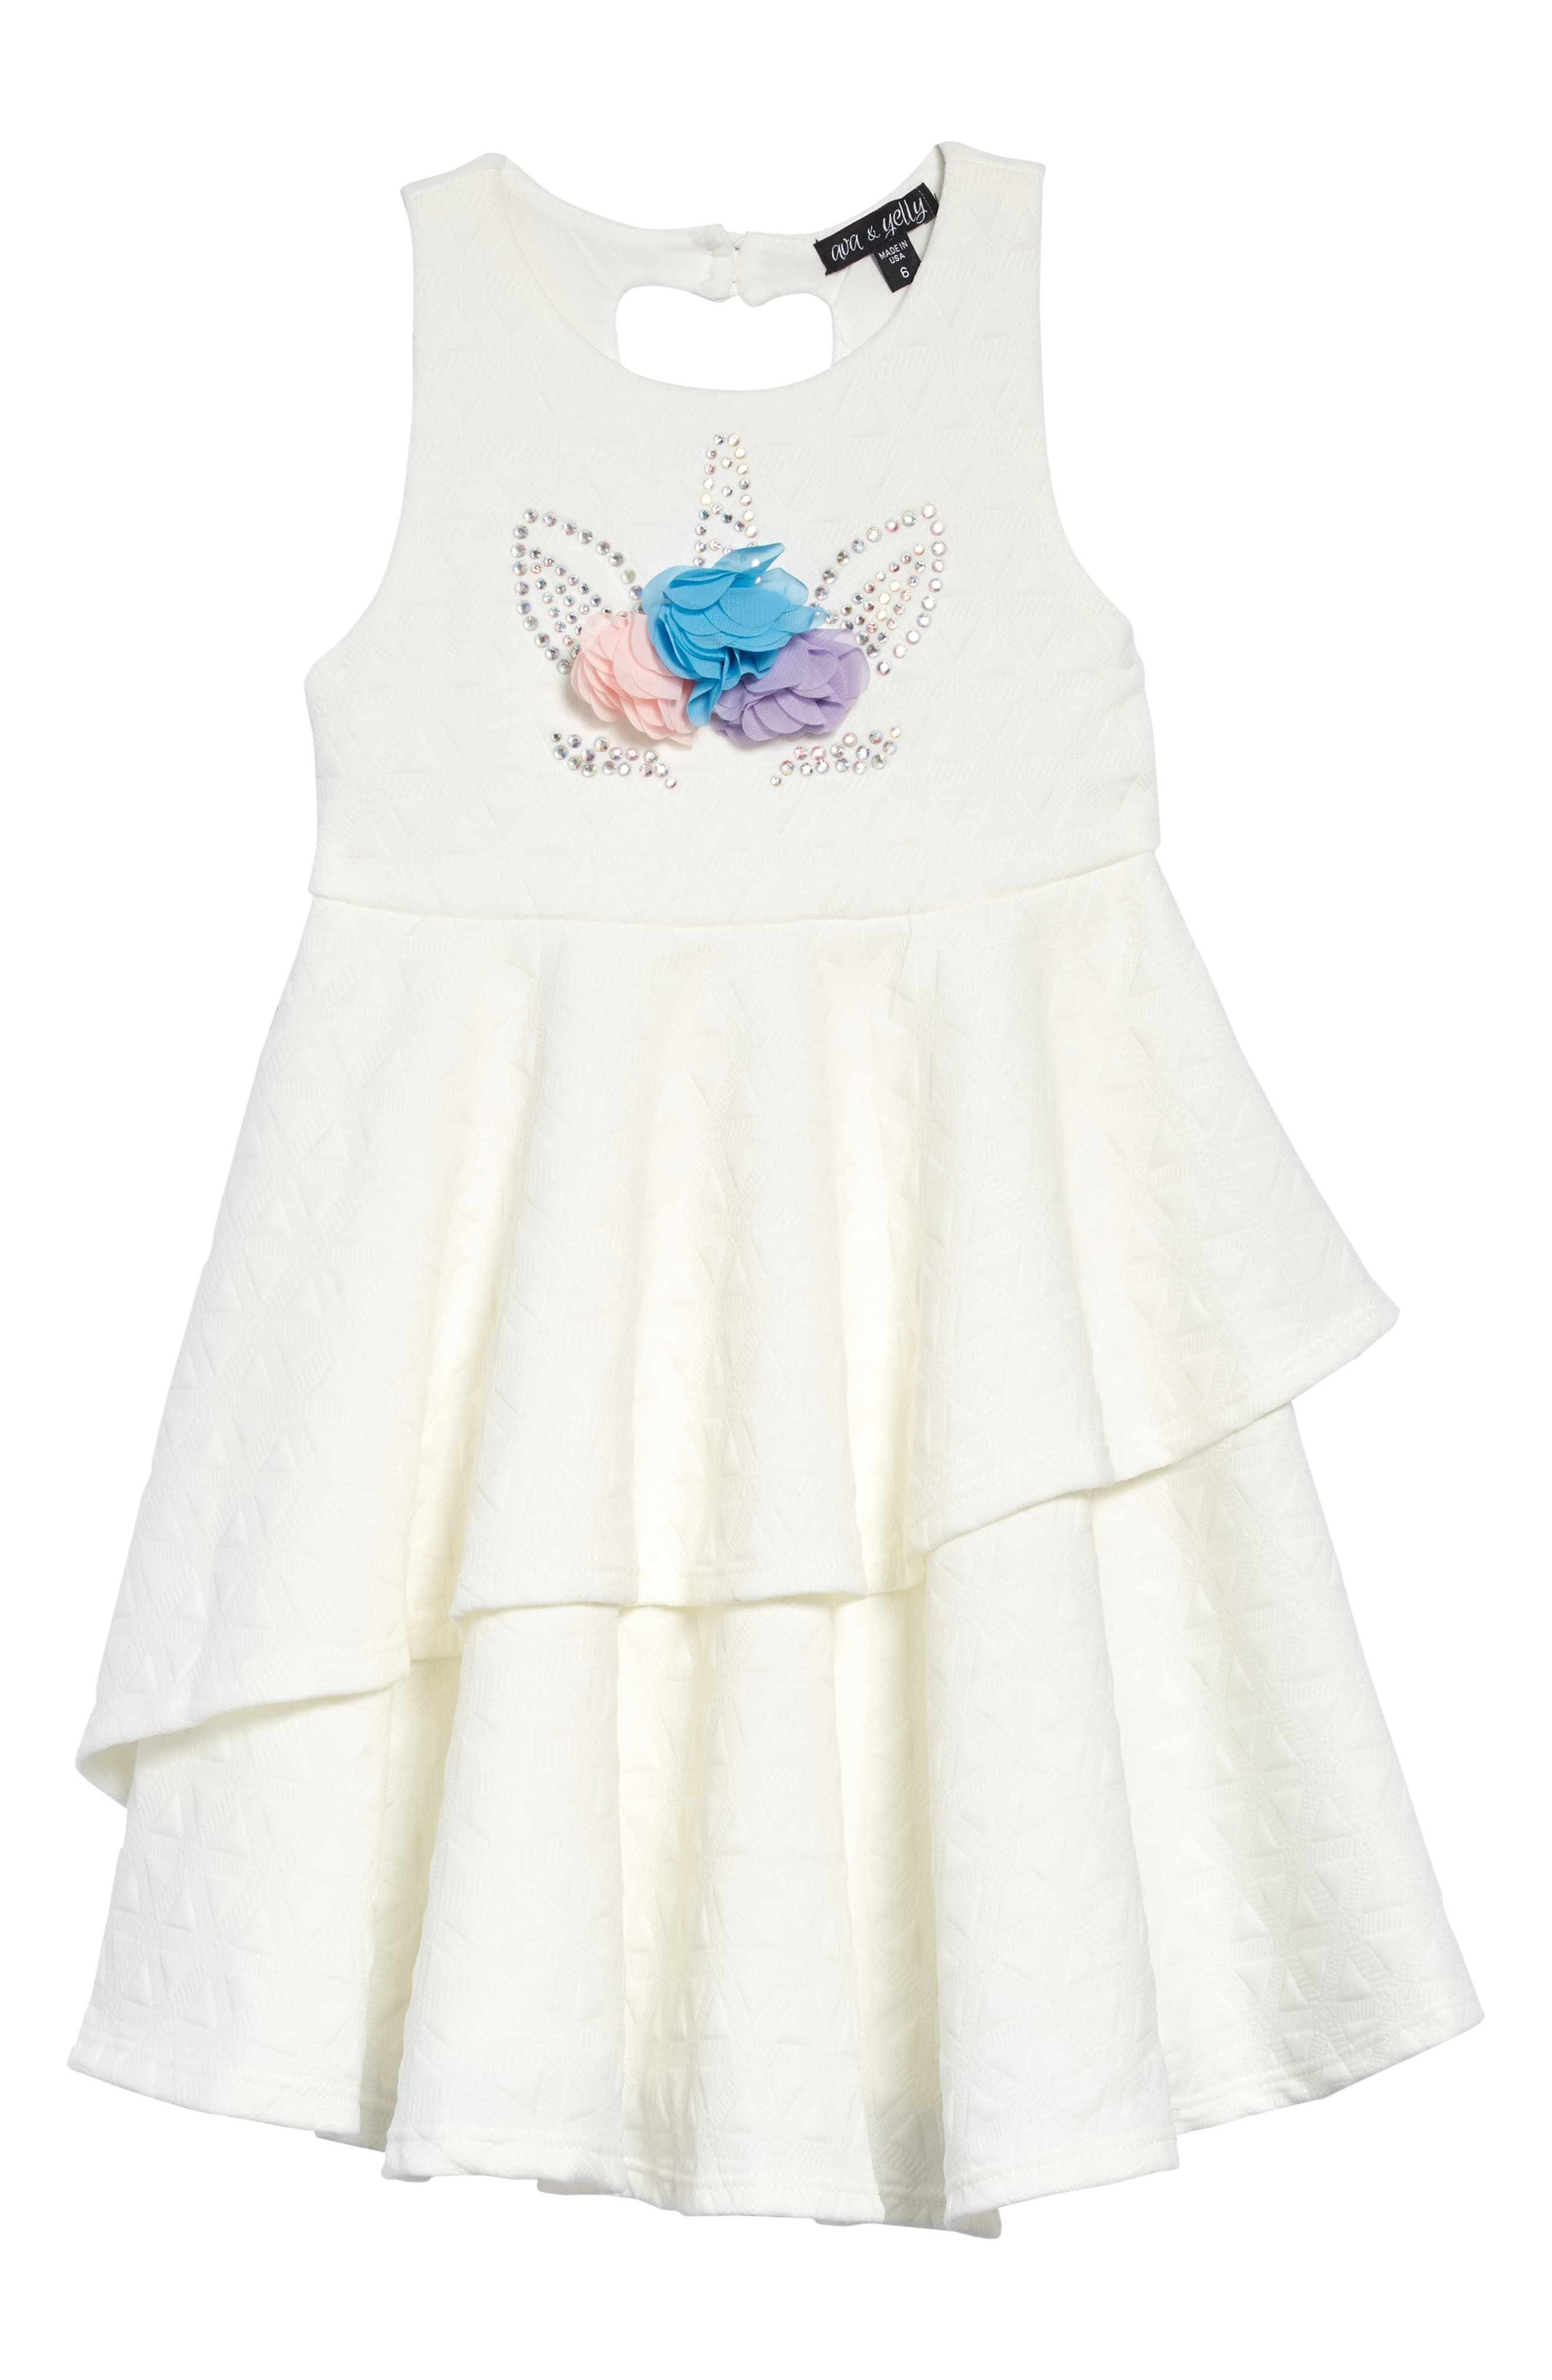 Toddler Girl S Ava Yelly Tiered Dress Size 2t White Toddler Dress Unicorn Dress Unicorn Dress Toddler [ 4048 x 2640 Pixel ]